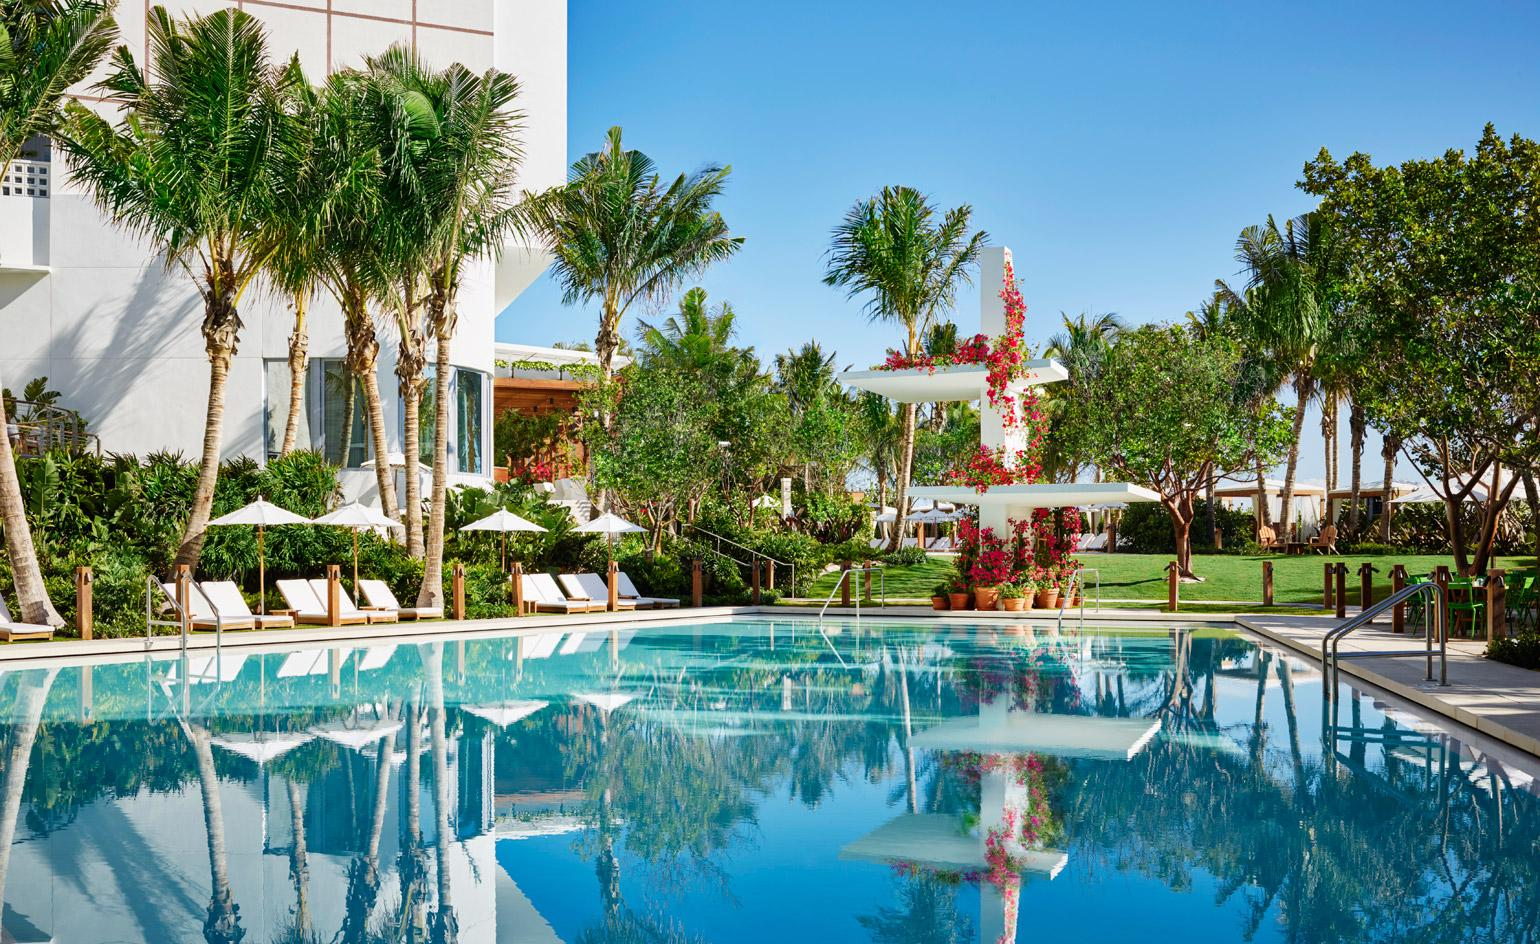 Online Voucher Code Printables 10 Off Miami Hotels